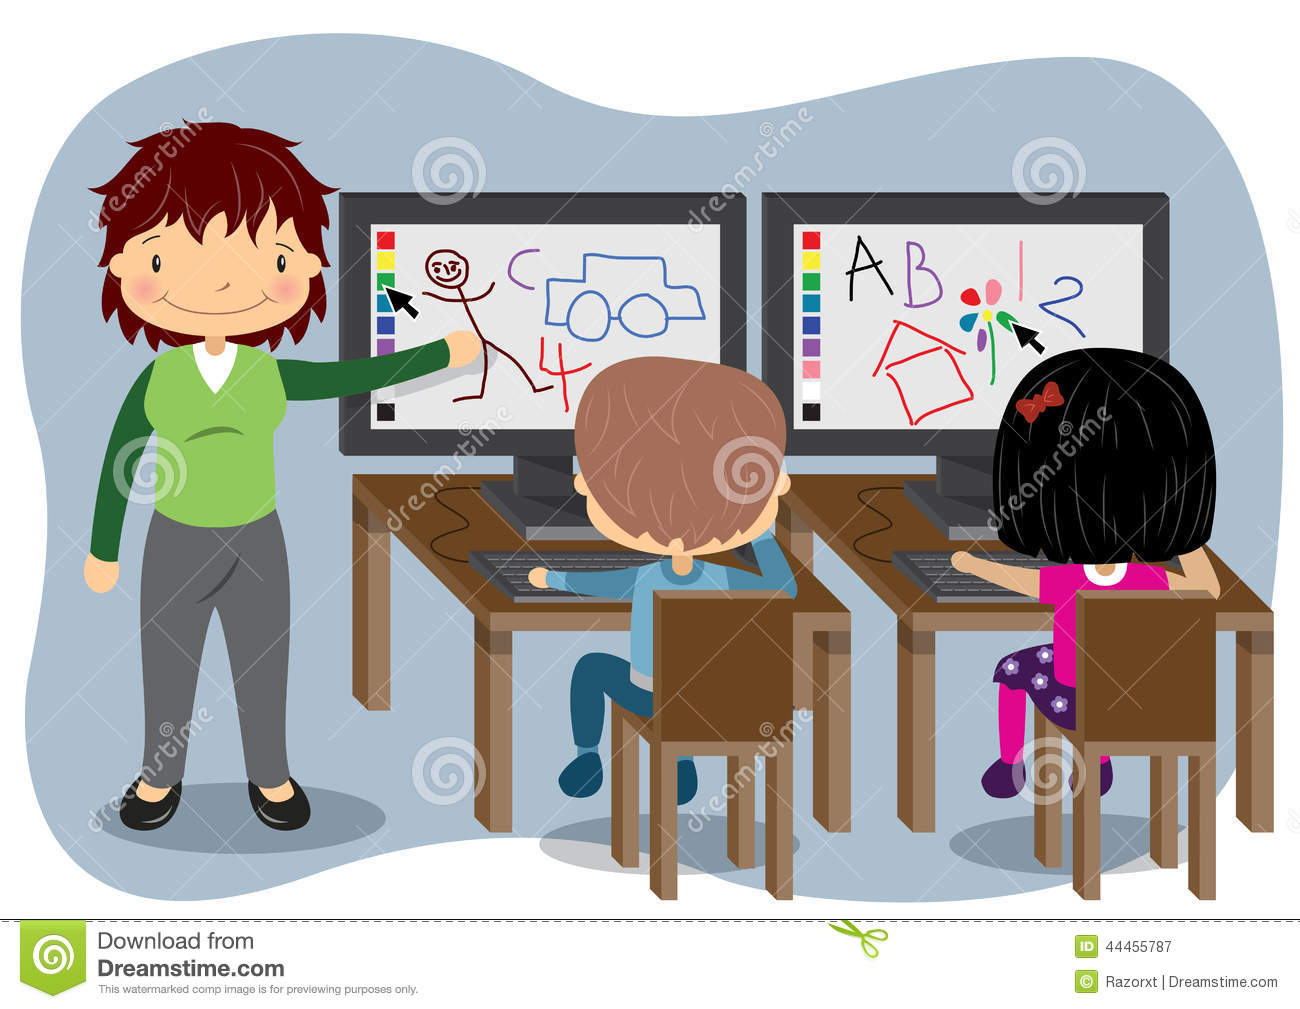 computer education clipart - photo #25